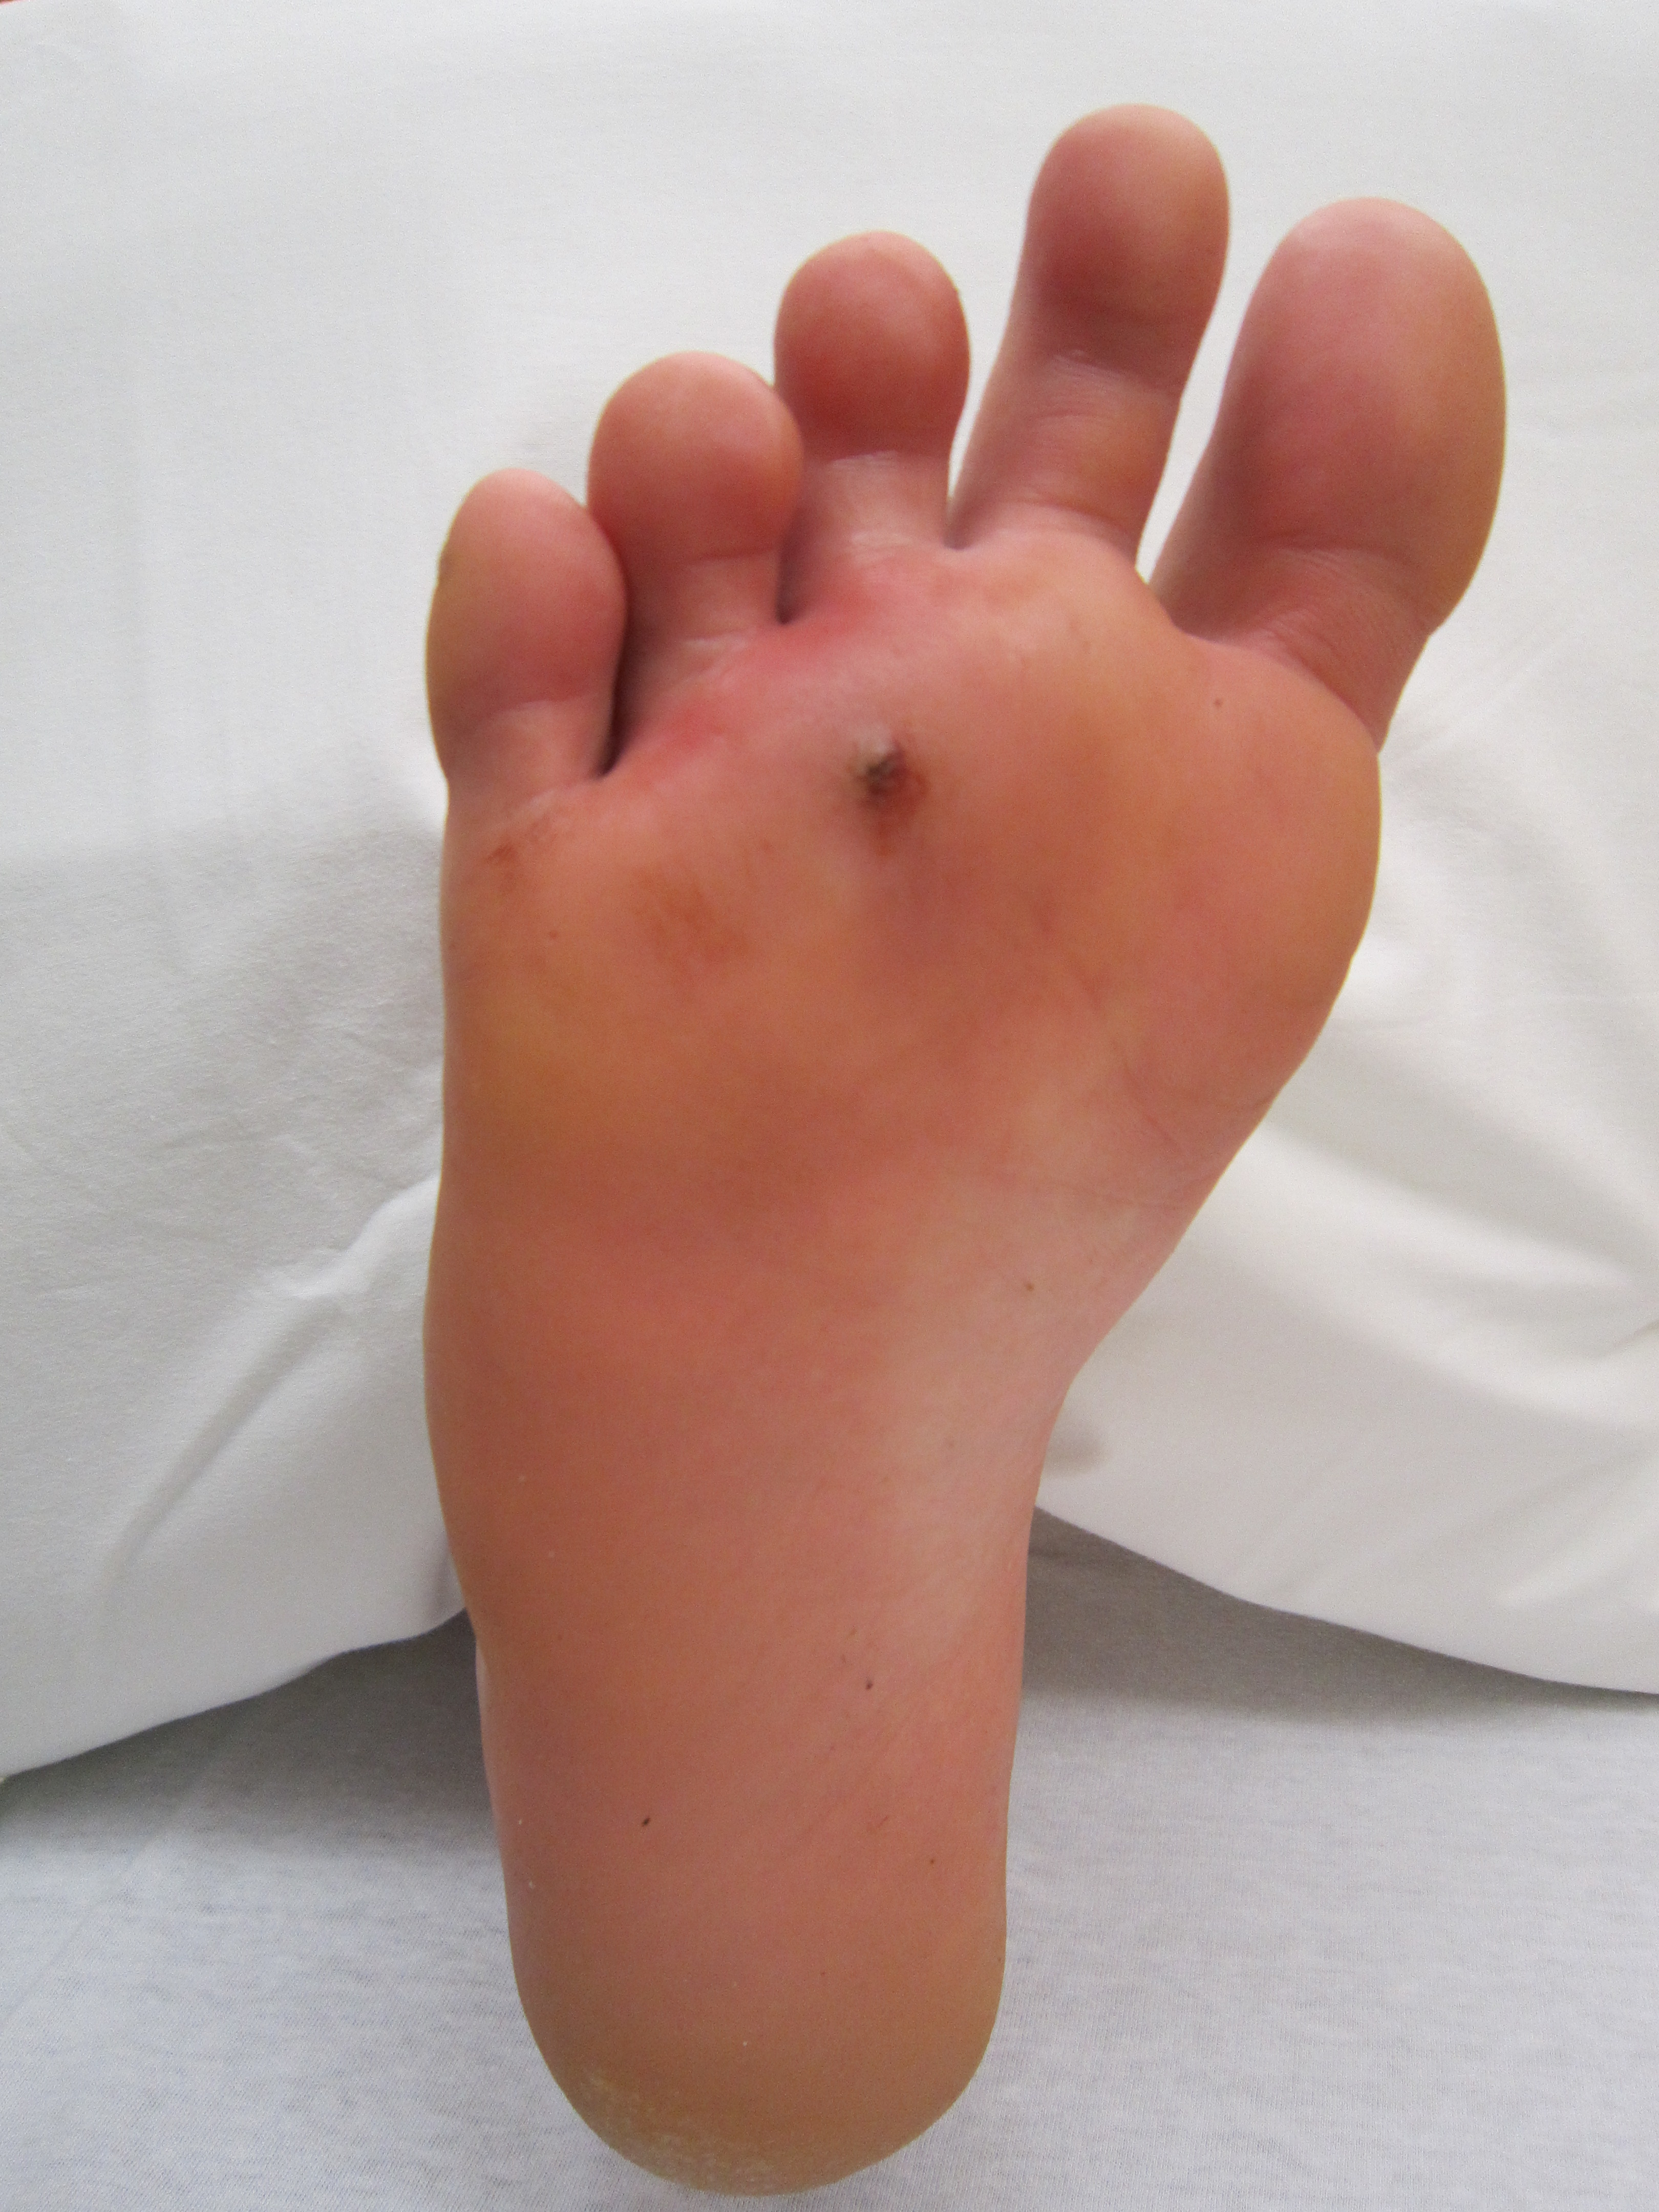 An infected puncture wound to the bottom of the forefoot.